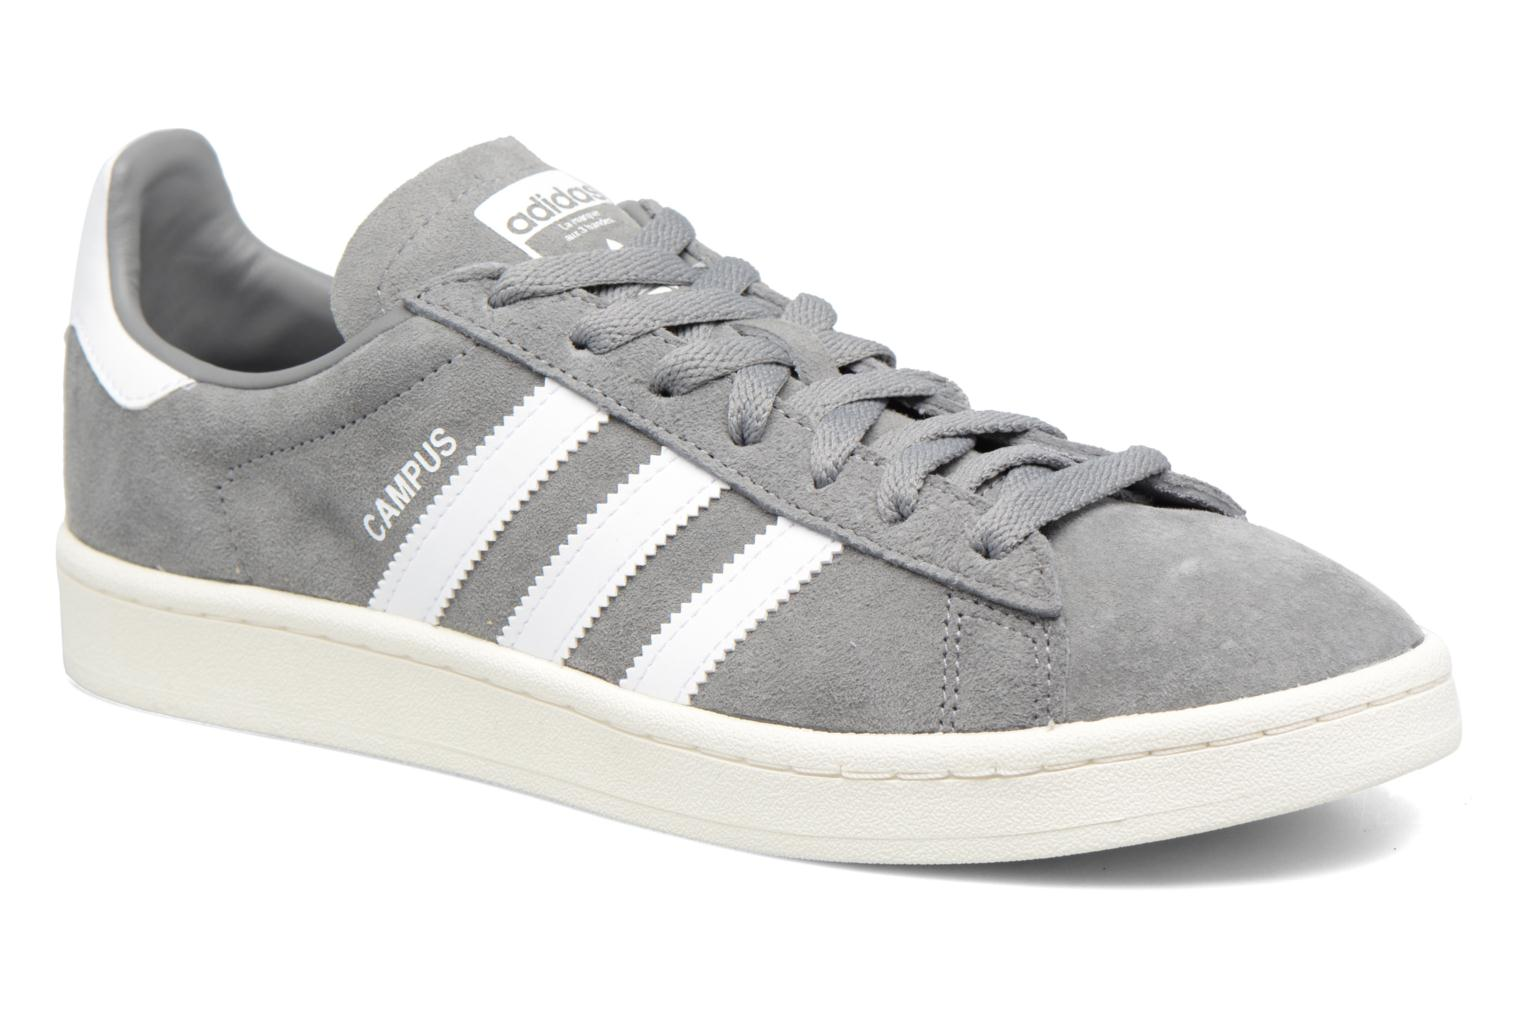 adidas Originals CAMPUS Gris aOoGoZ